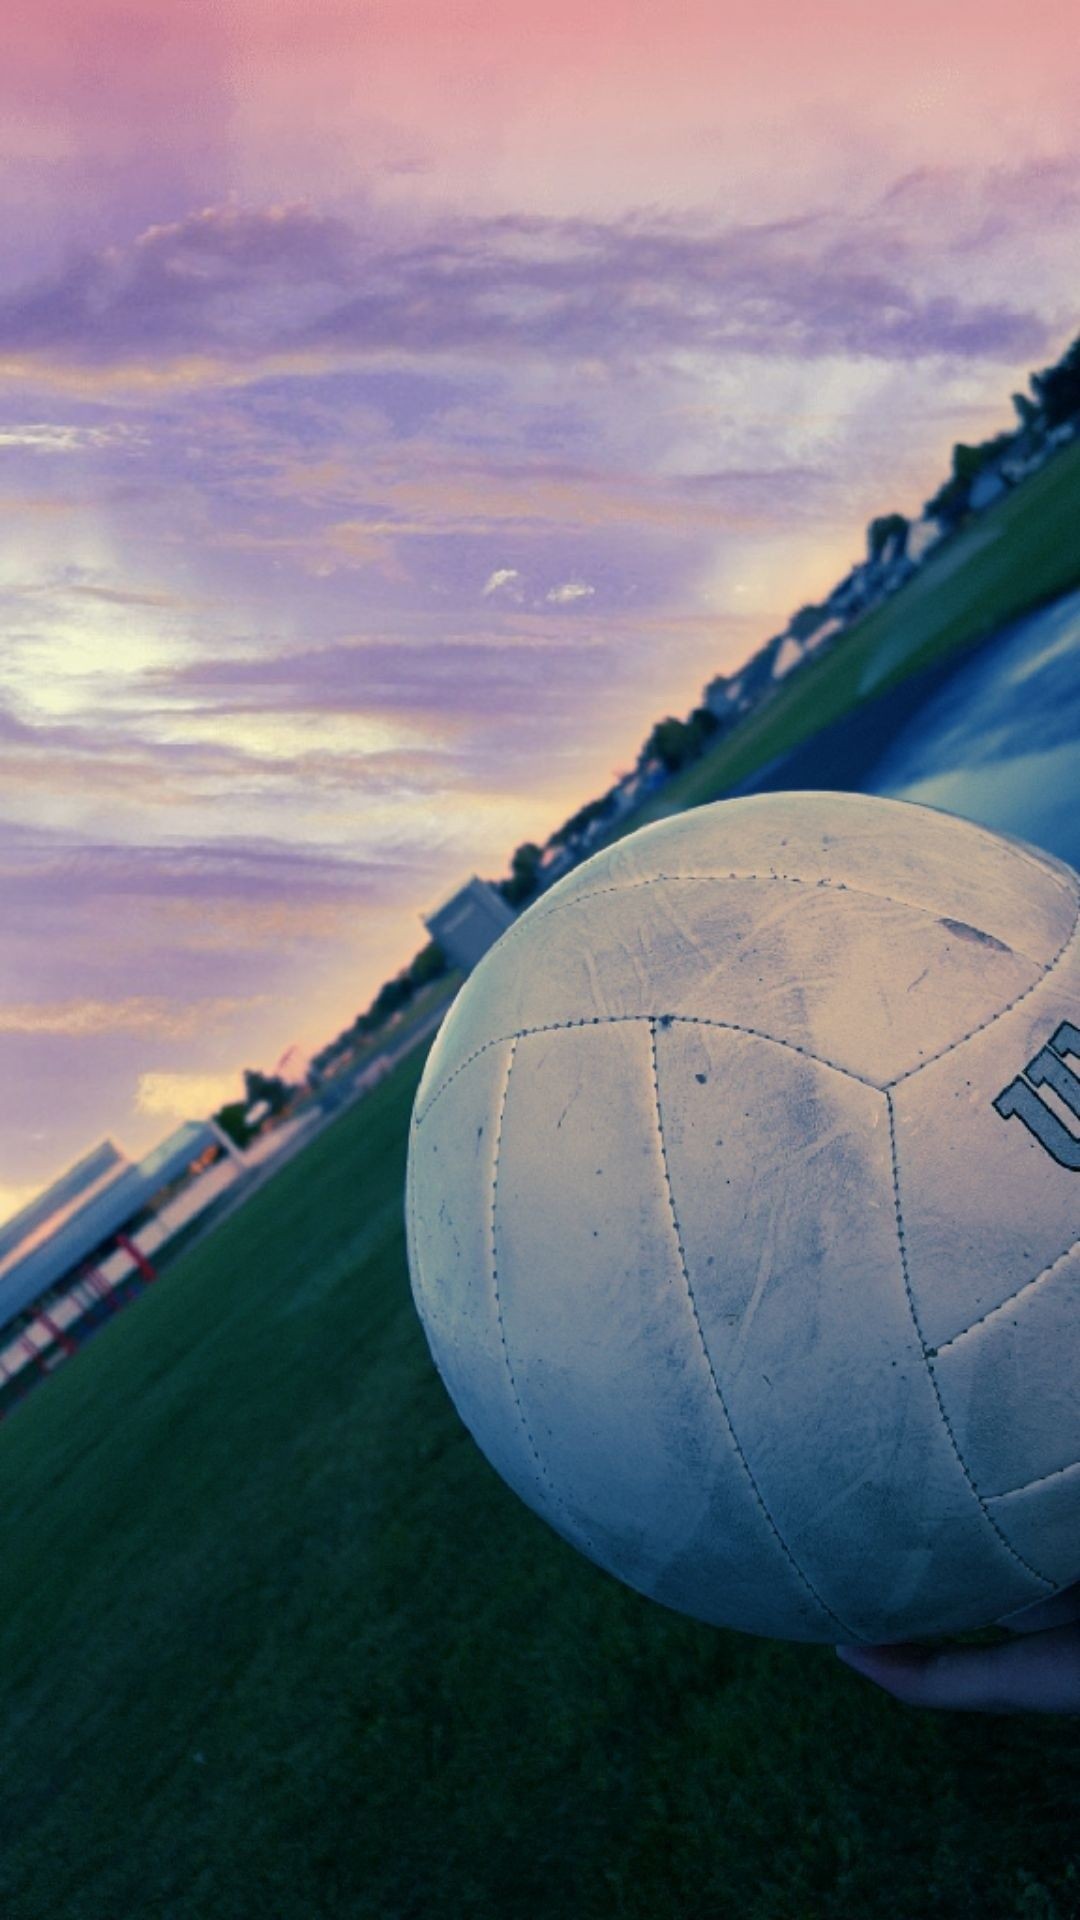 This Is Amazing Volleyball Wallpaper Volleyball Backgrounds Volleyball Photography